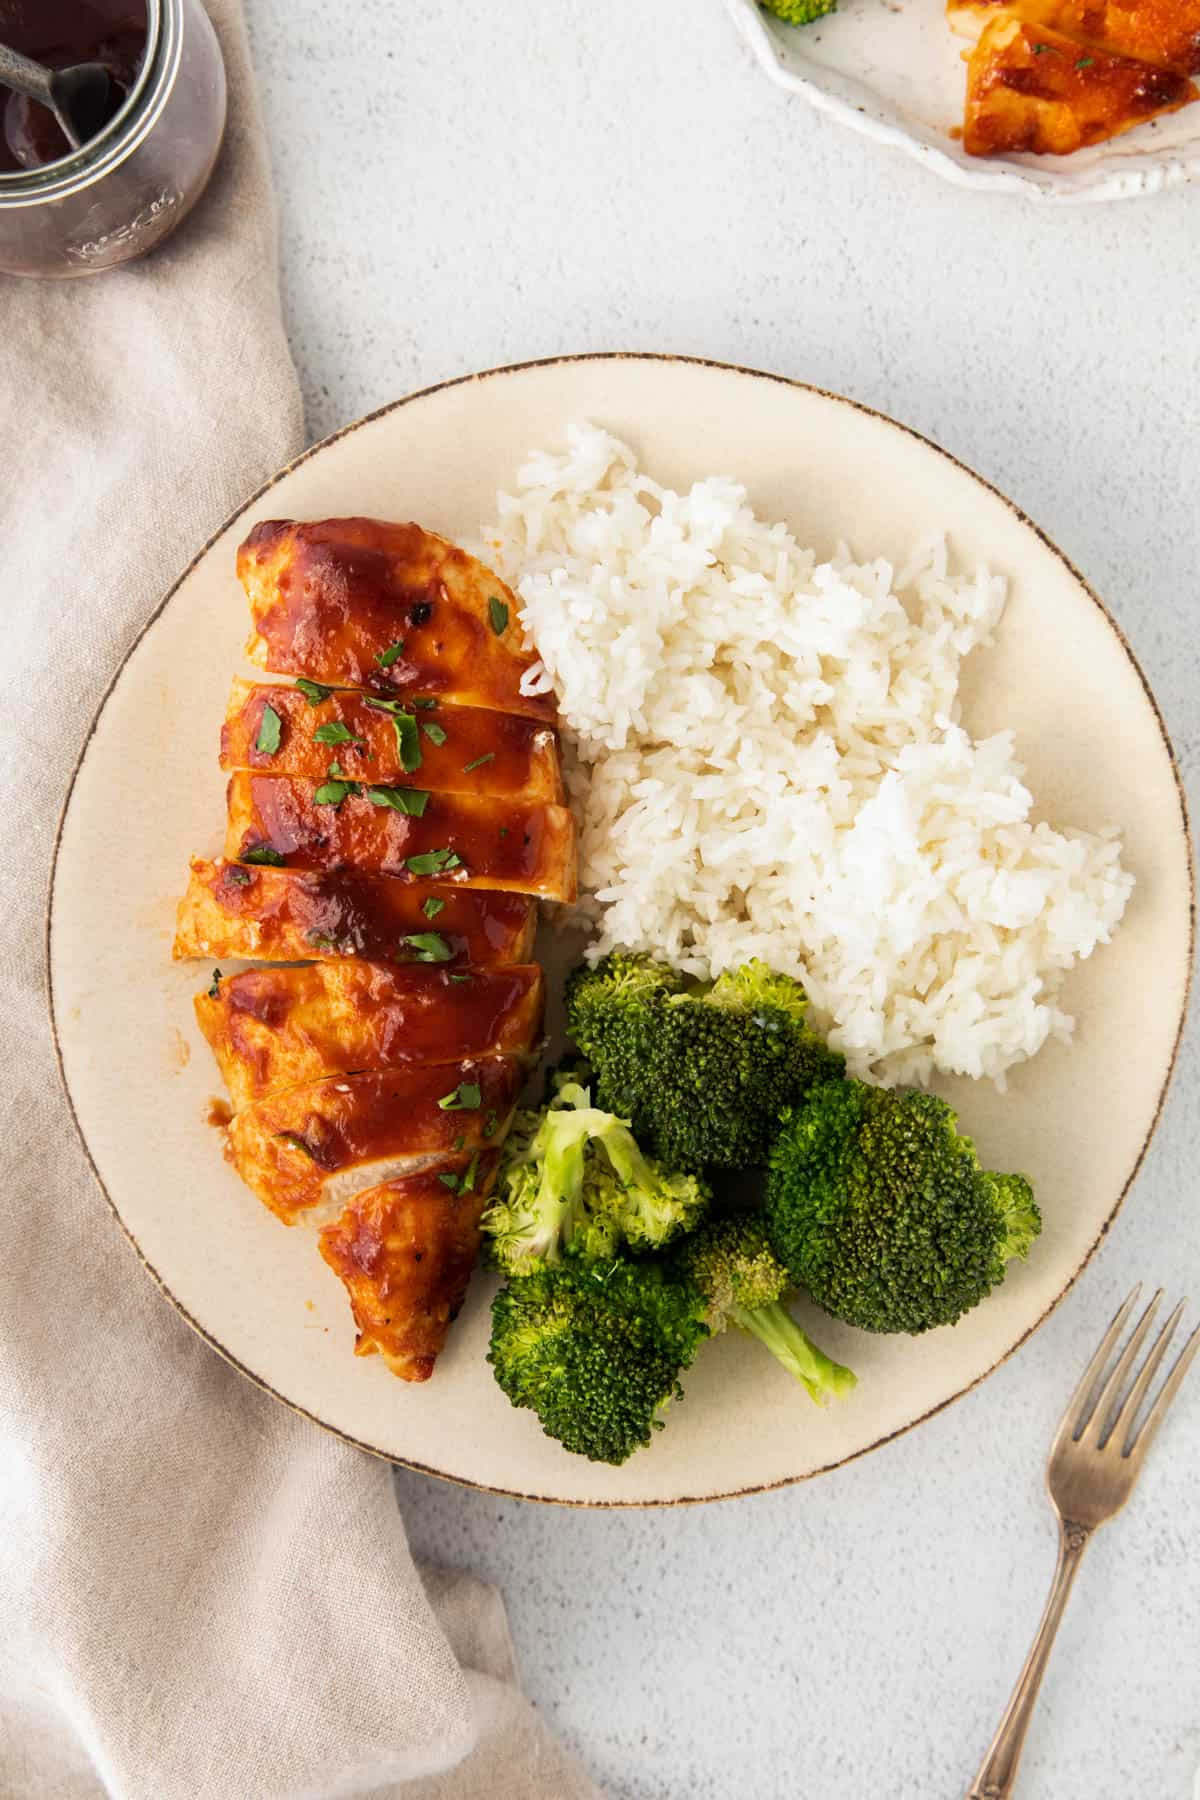 one piece of air fried bbq chicken on plate with rice and broccoli